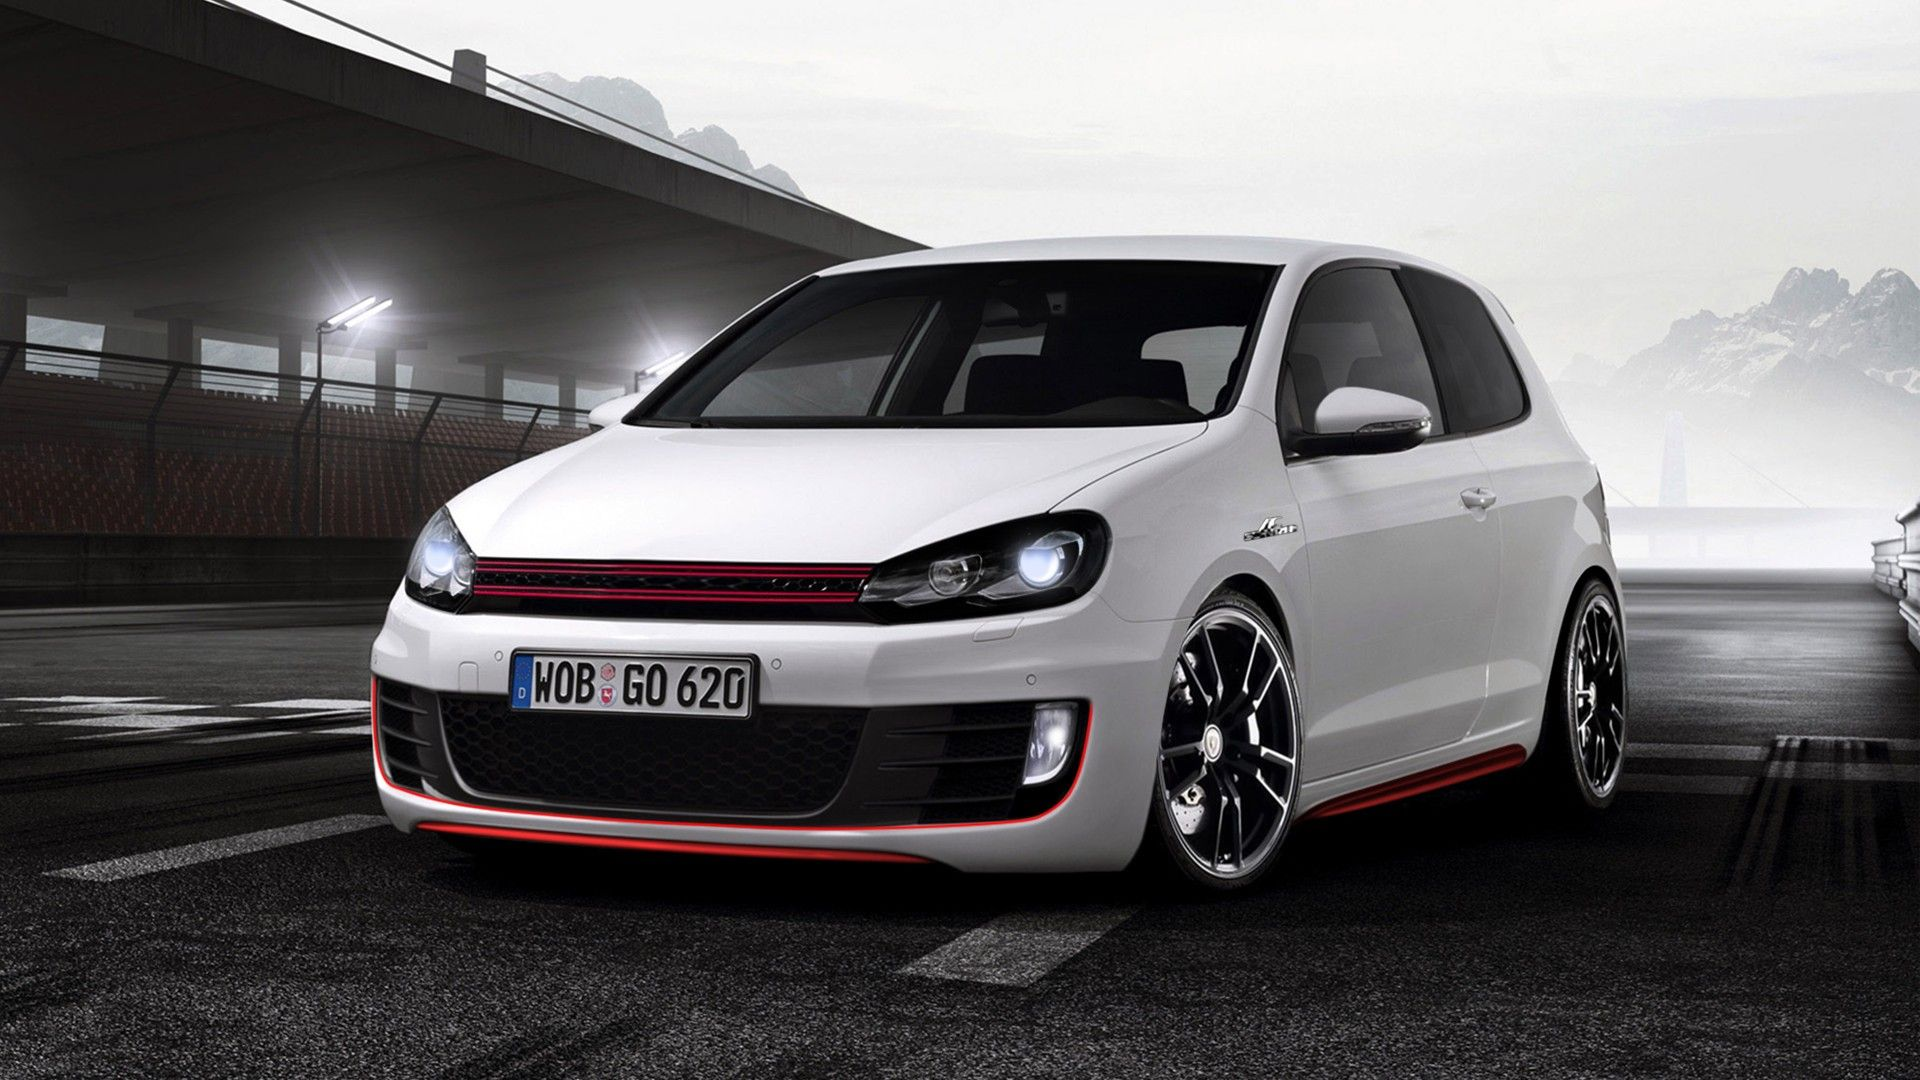 Volkswagen Golf Gti Sport Hd Picture Wallpaper Hd Car Wallpaper